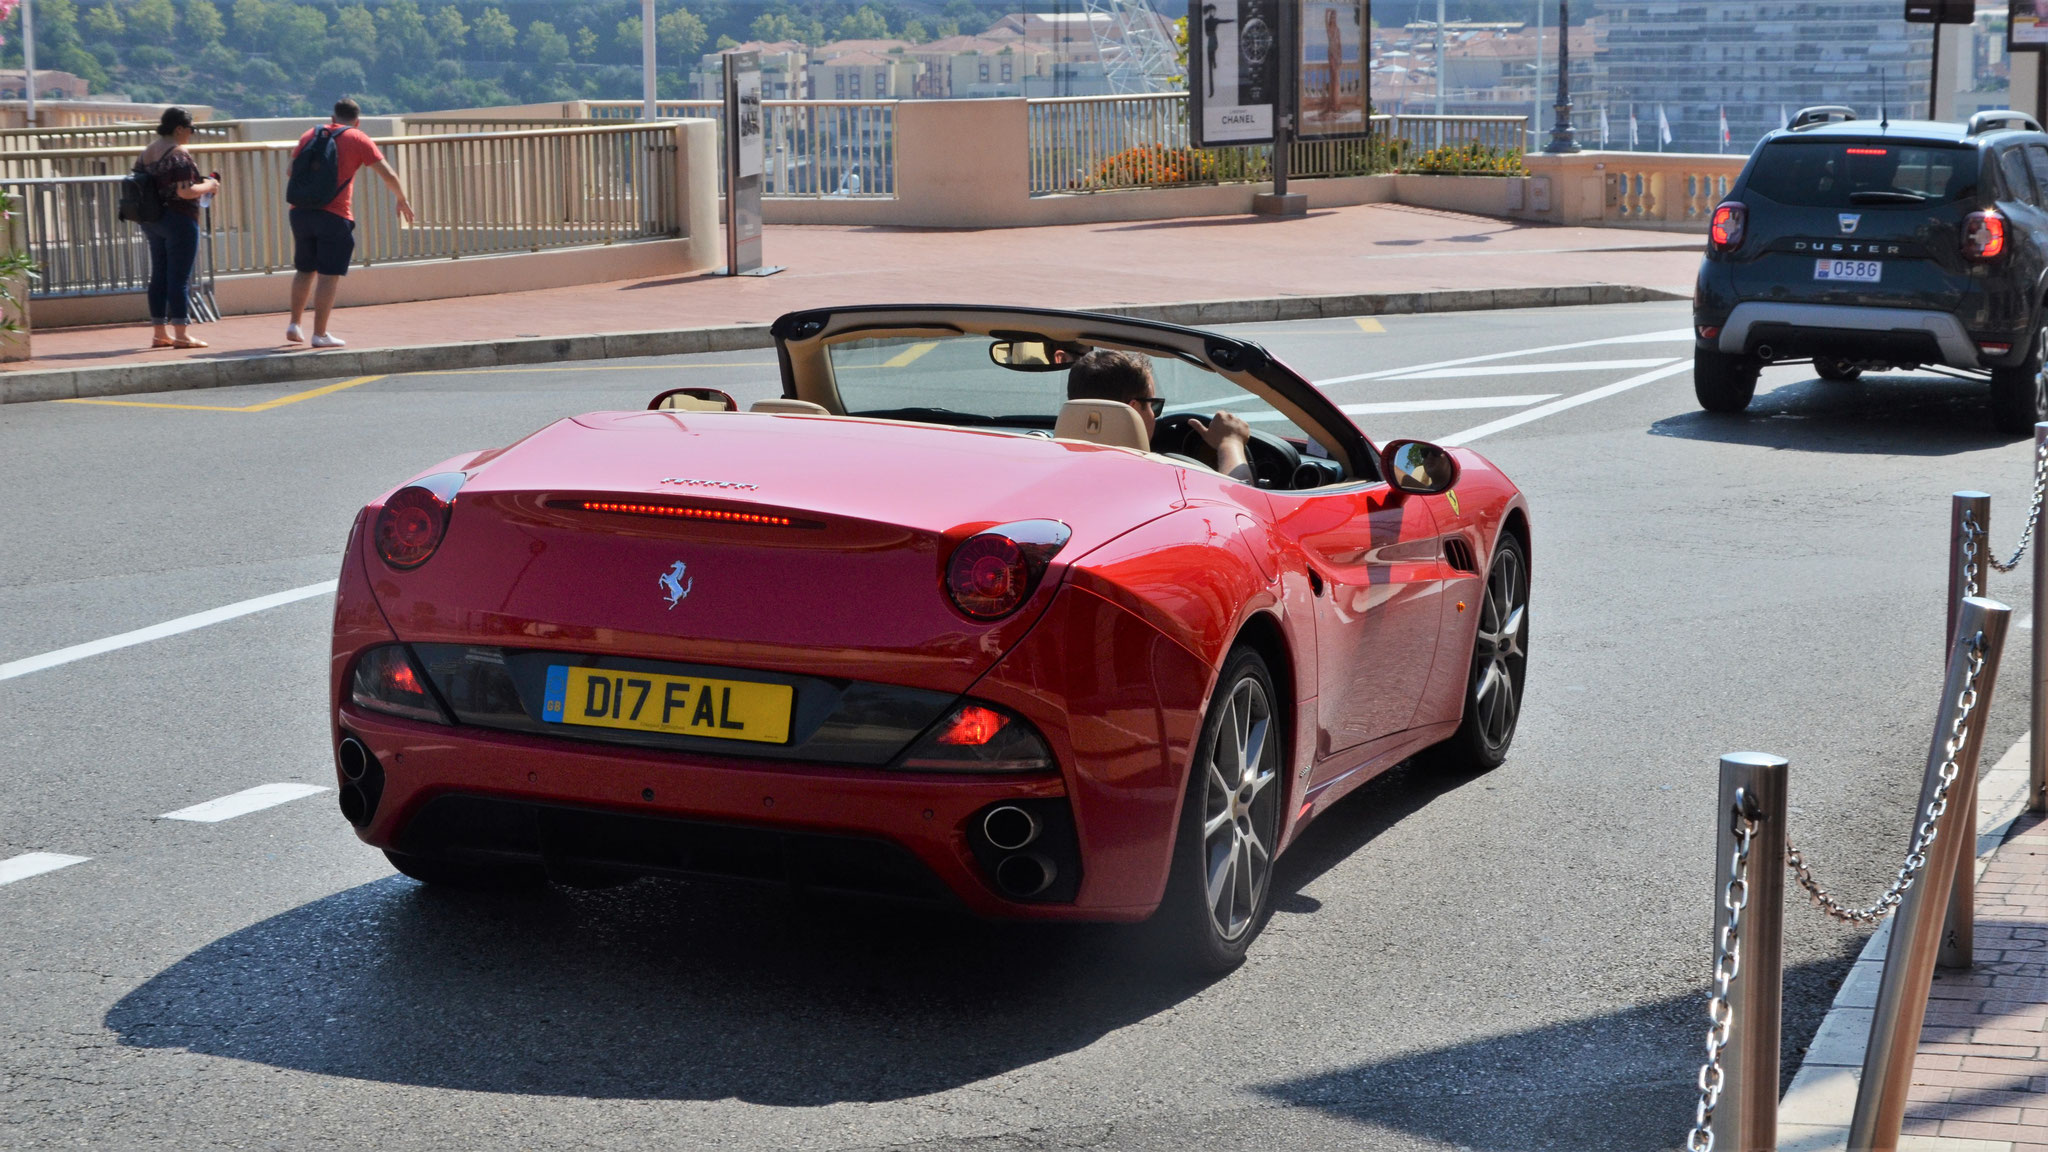 Ferrari California - D17-FAL (GB)